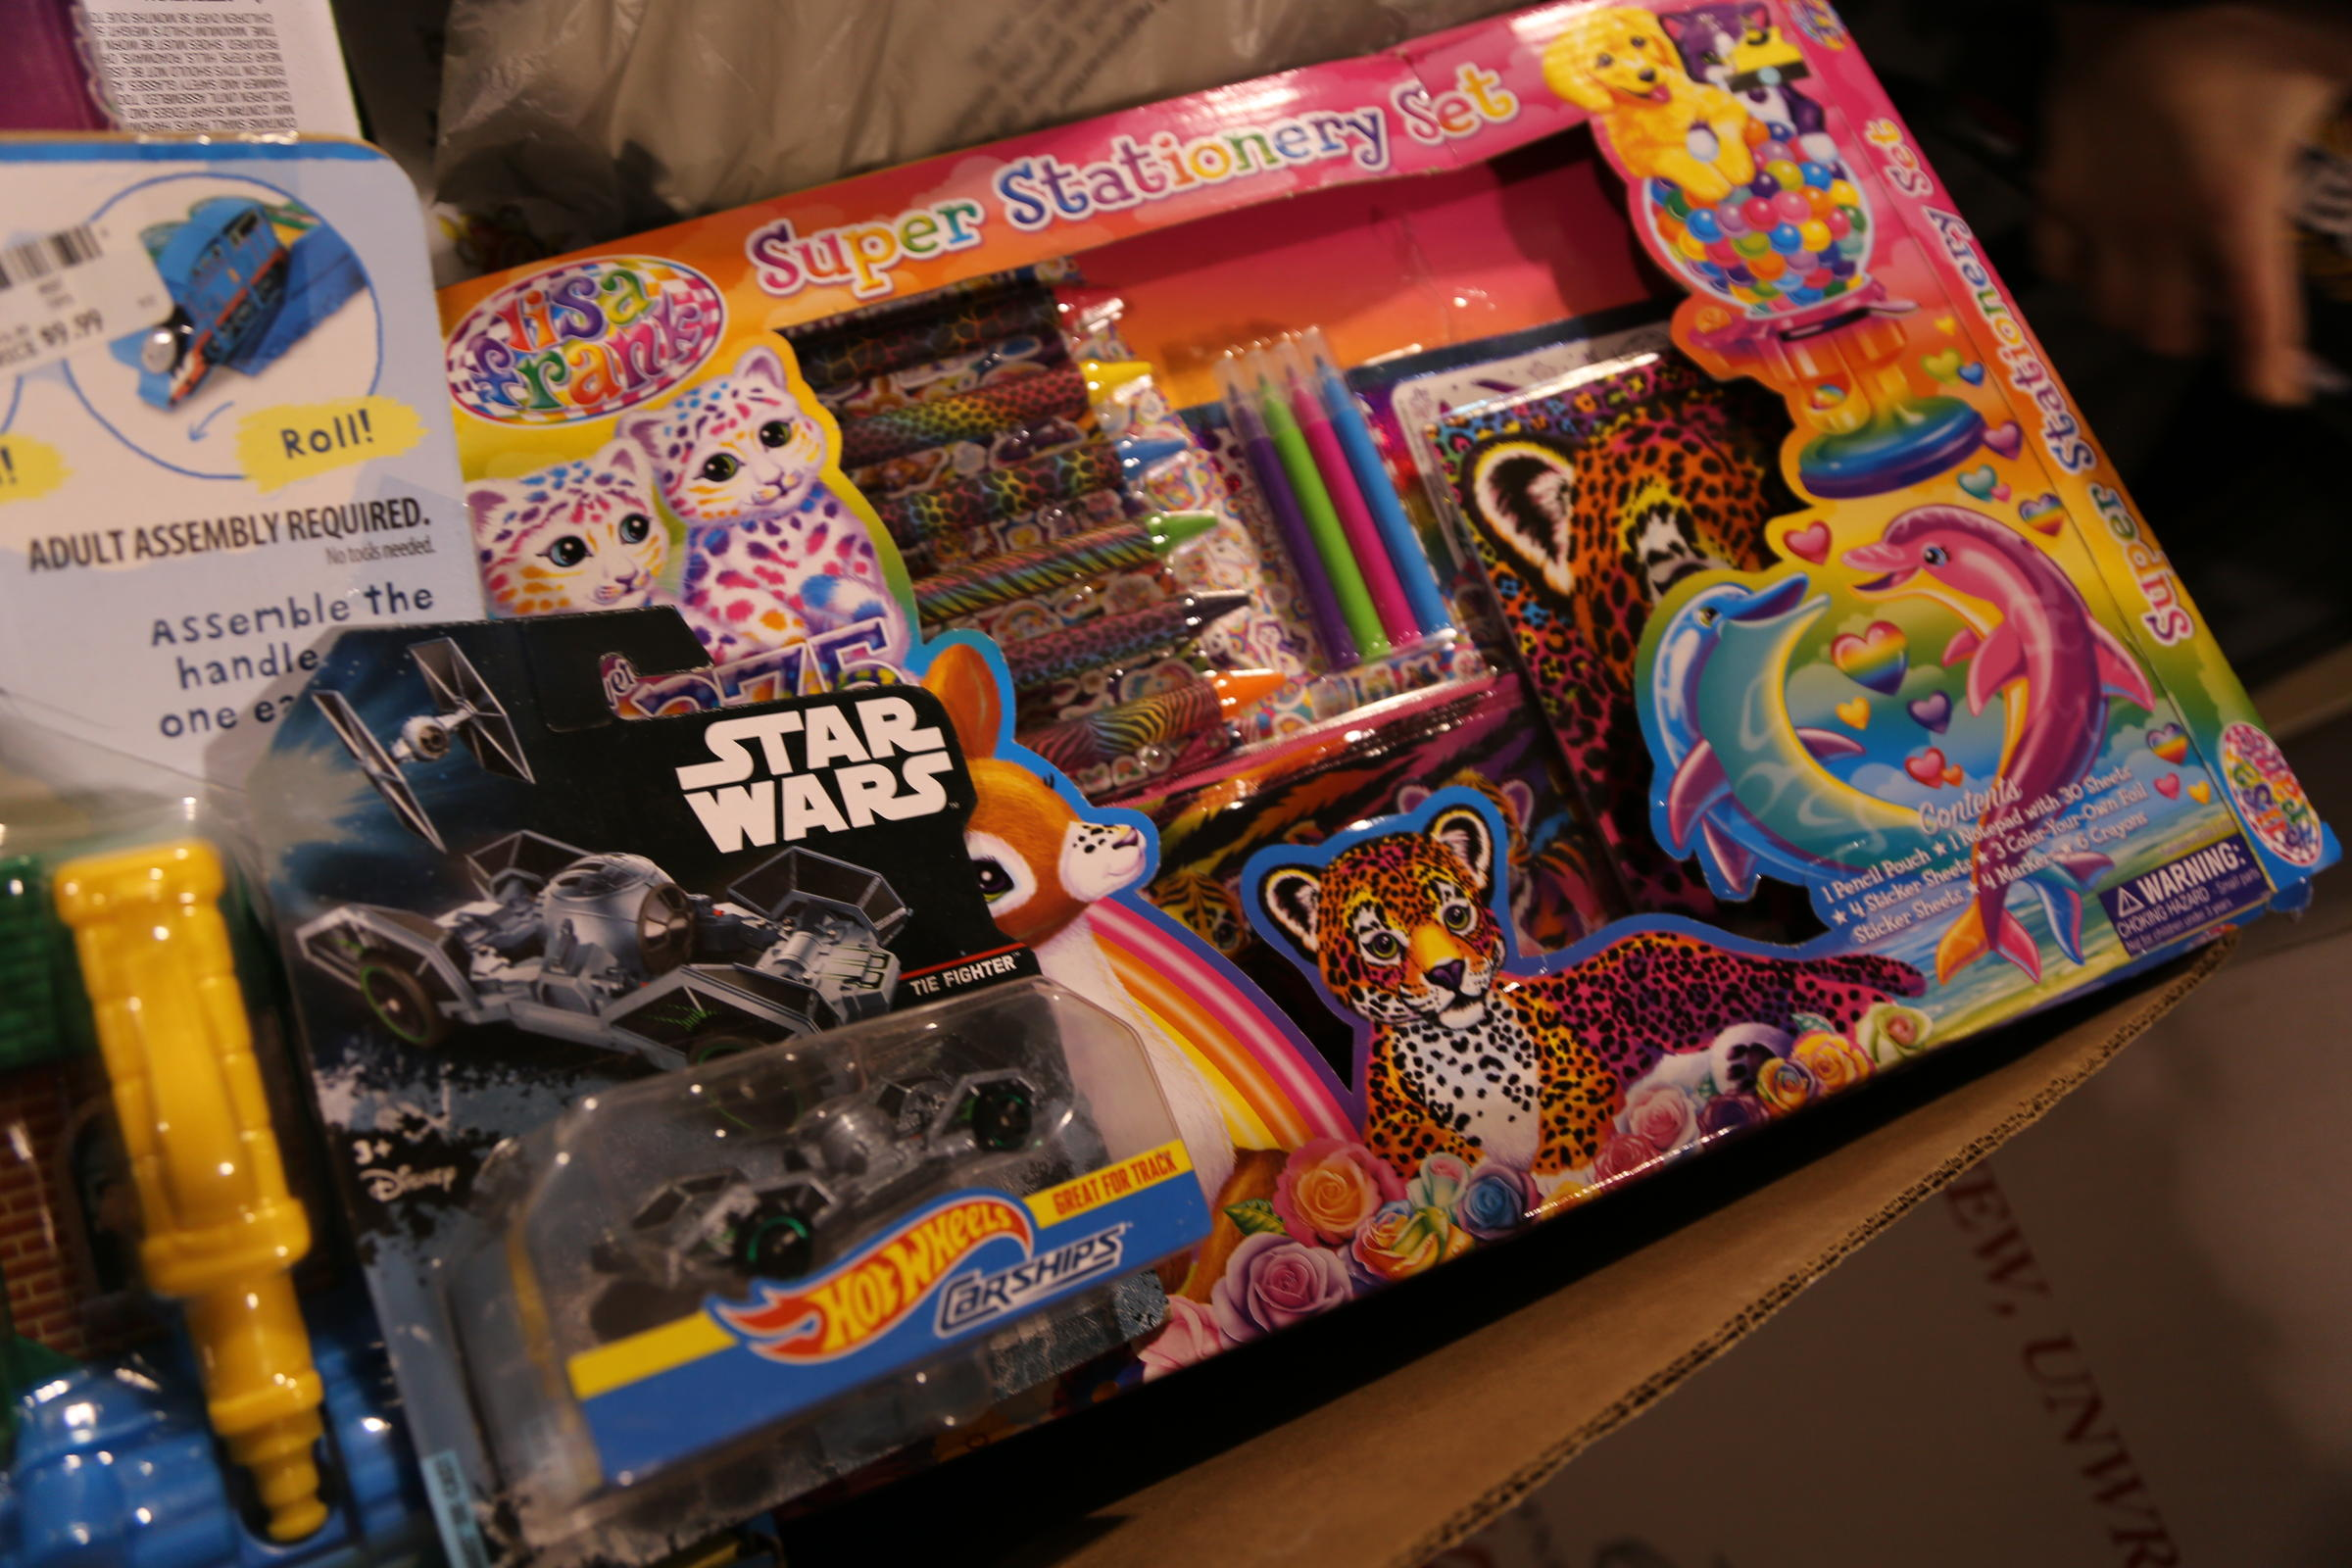 Volunteers Have Selected Both Star Wars And Stationary Gifts To Place In The Girls Bin At A Toys For Tots Collection Packaging Event West Mifflin